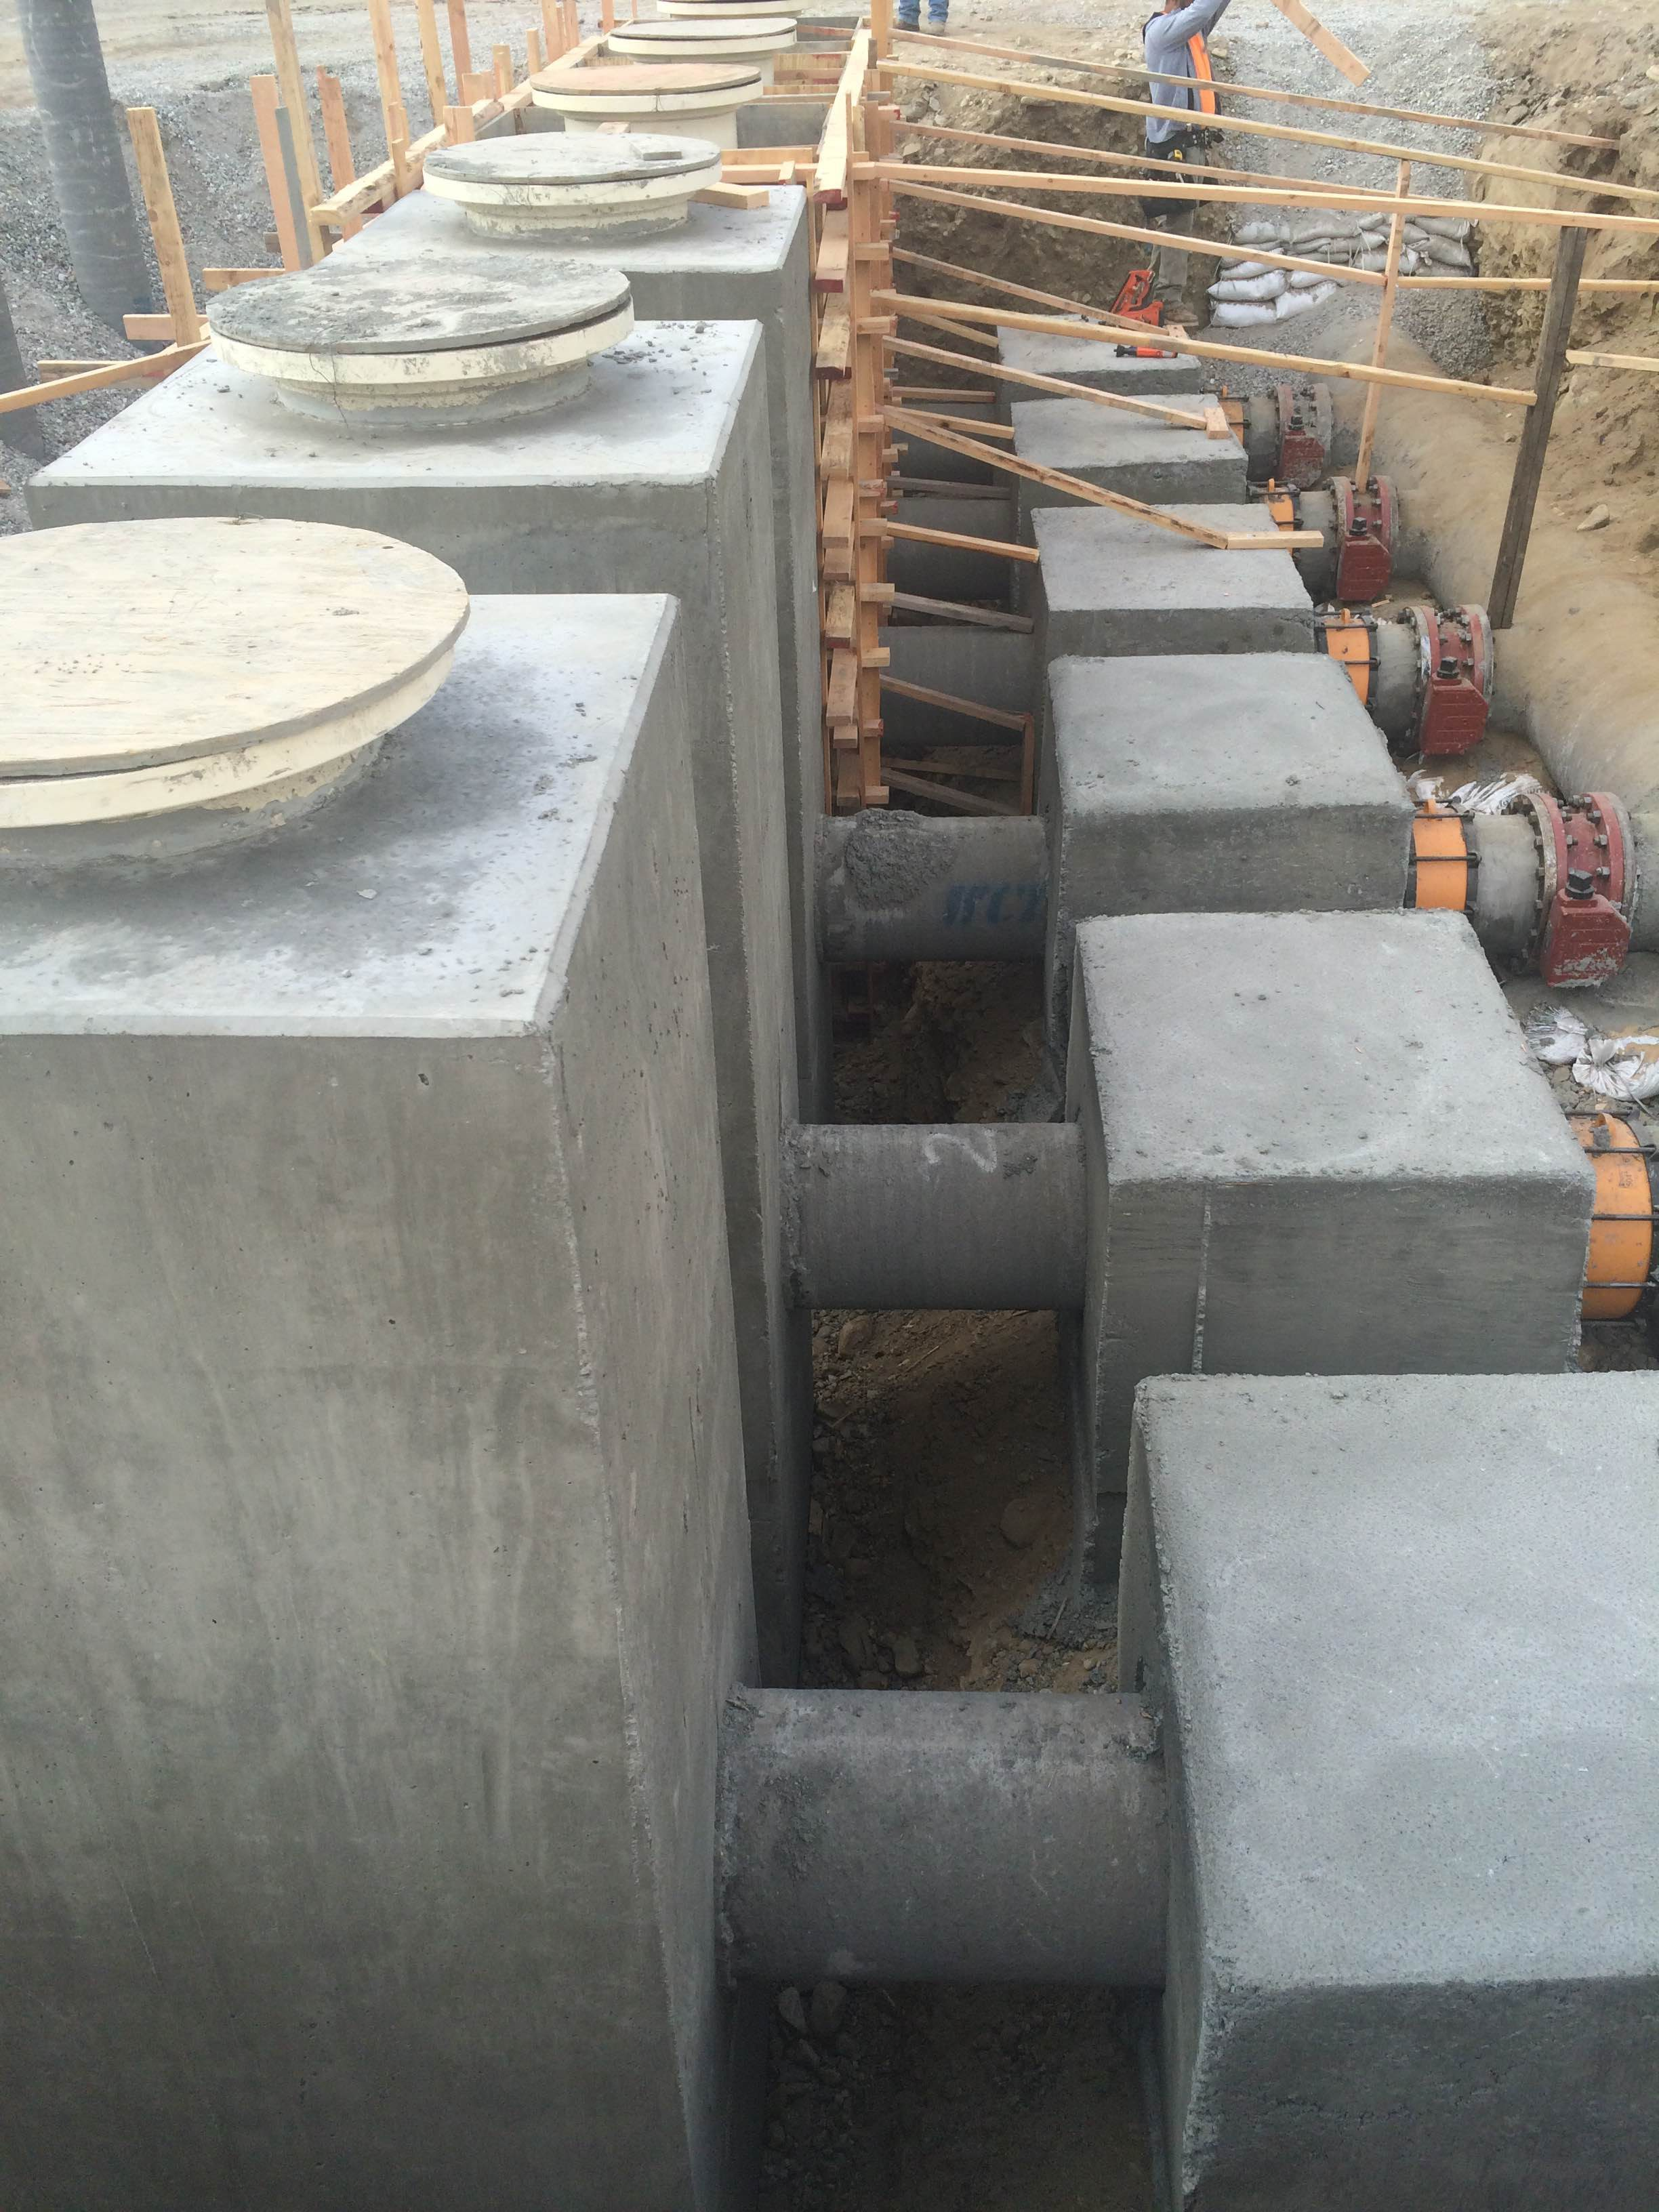 We built the concrete encasements for these water treatment plant pumps